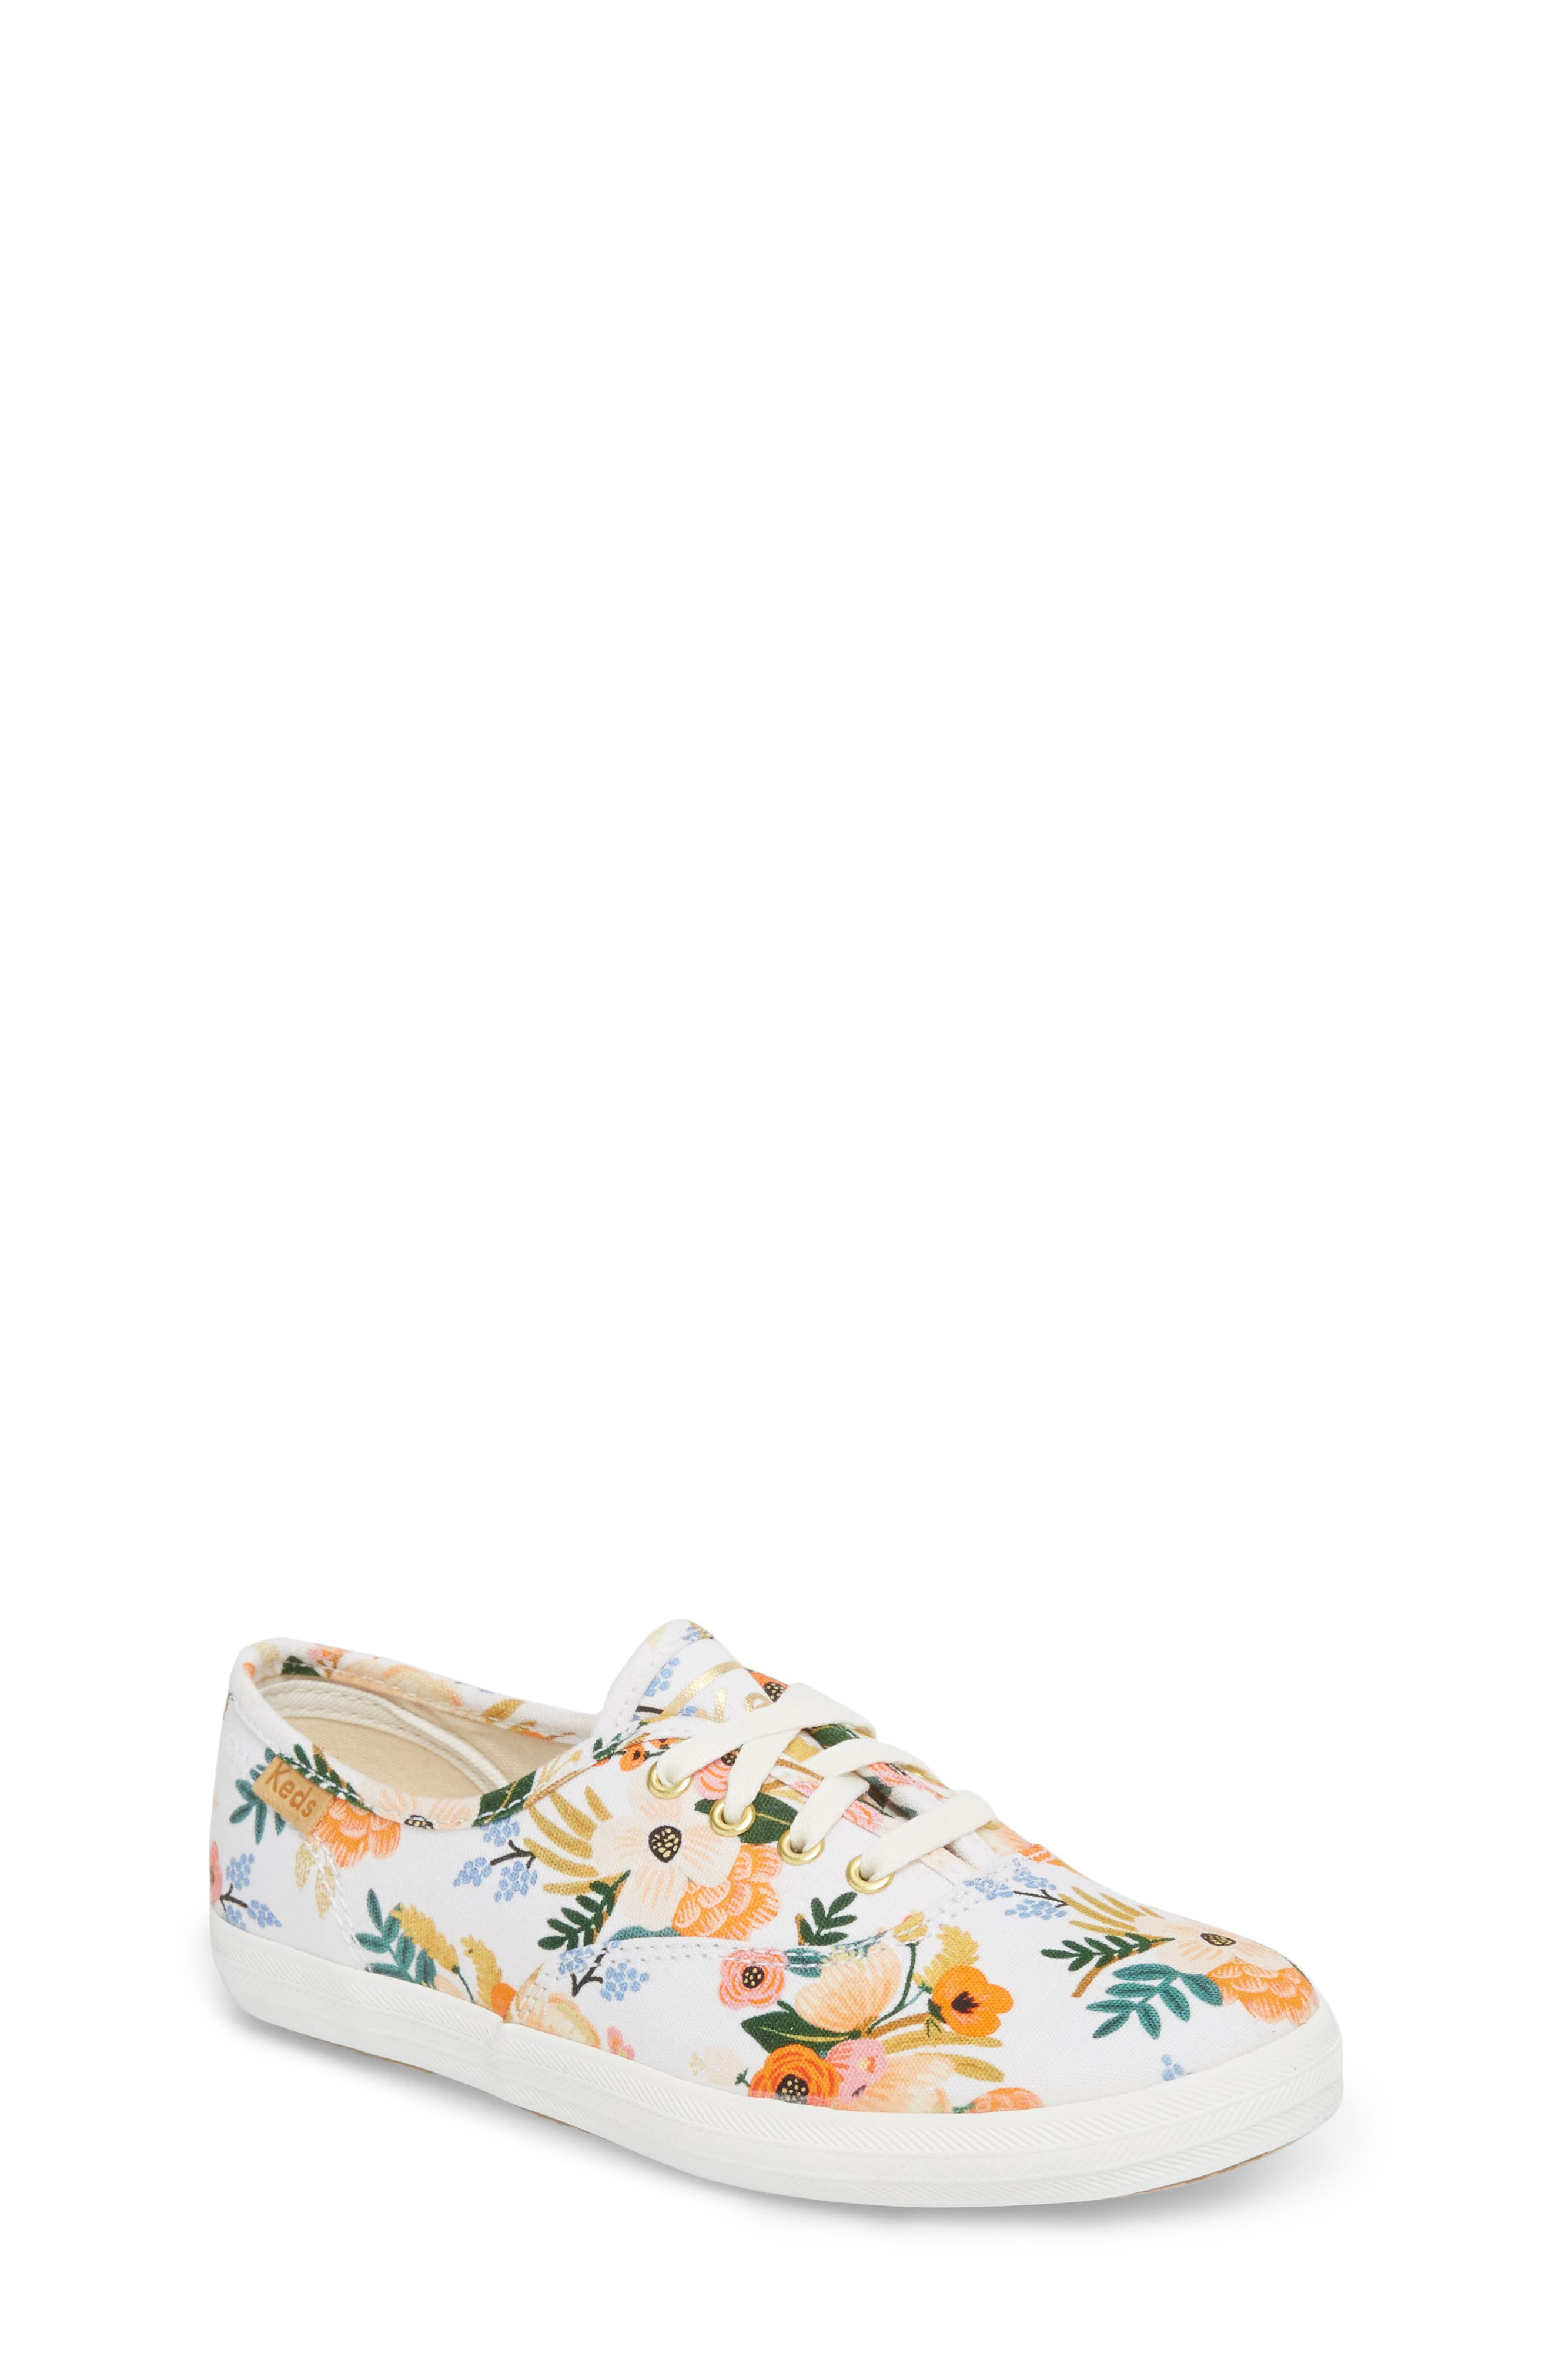 x Rifle Paper Co. Floral Print Champion Sneaker,                             Main thumbnail 1, color,                             Lively White